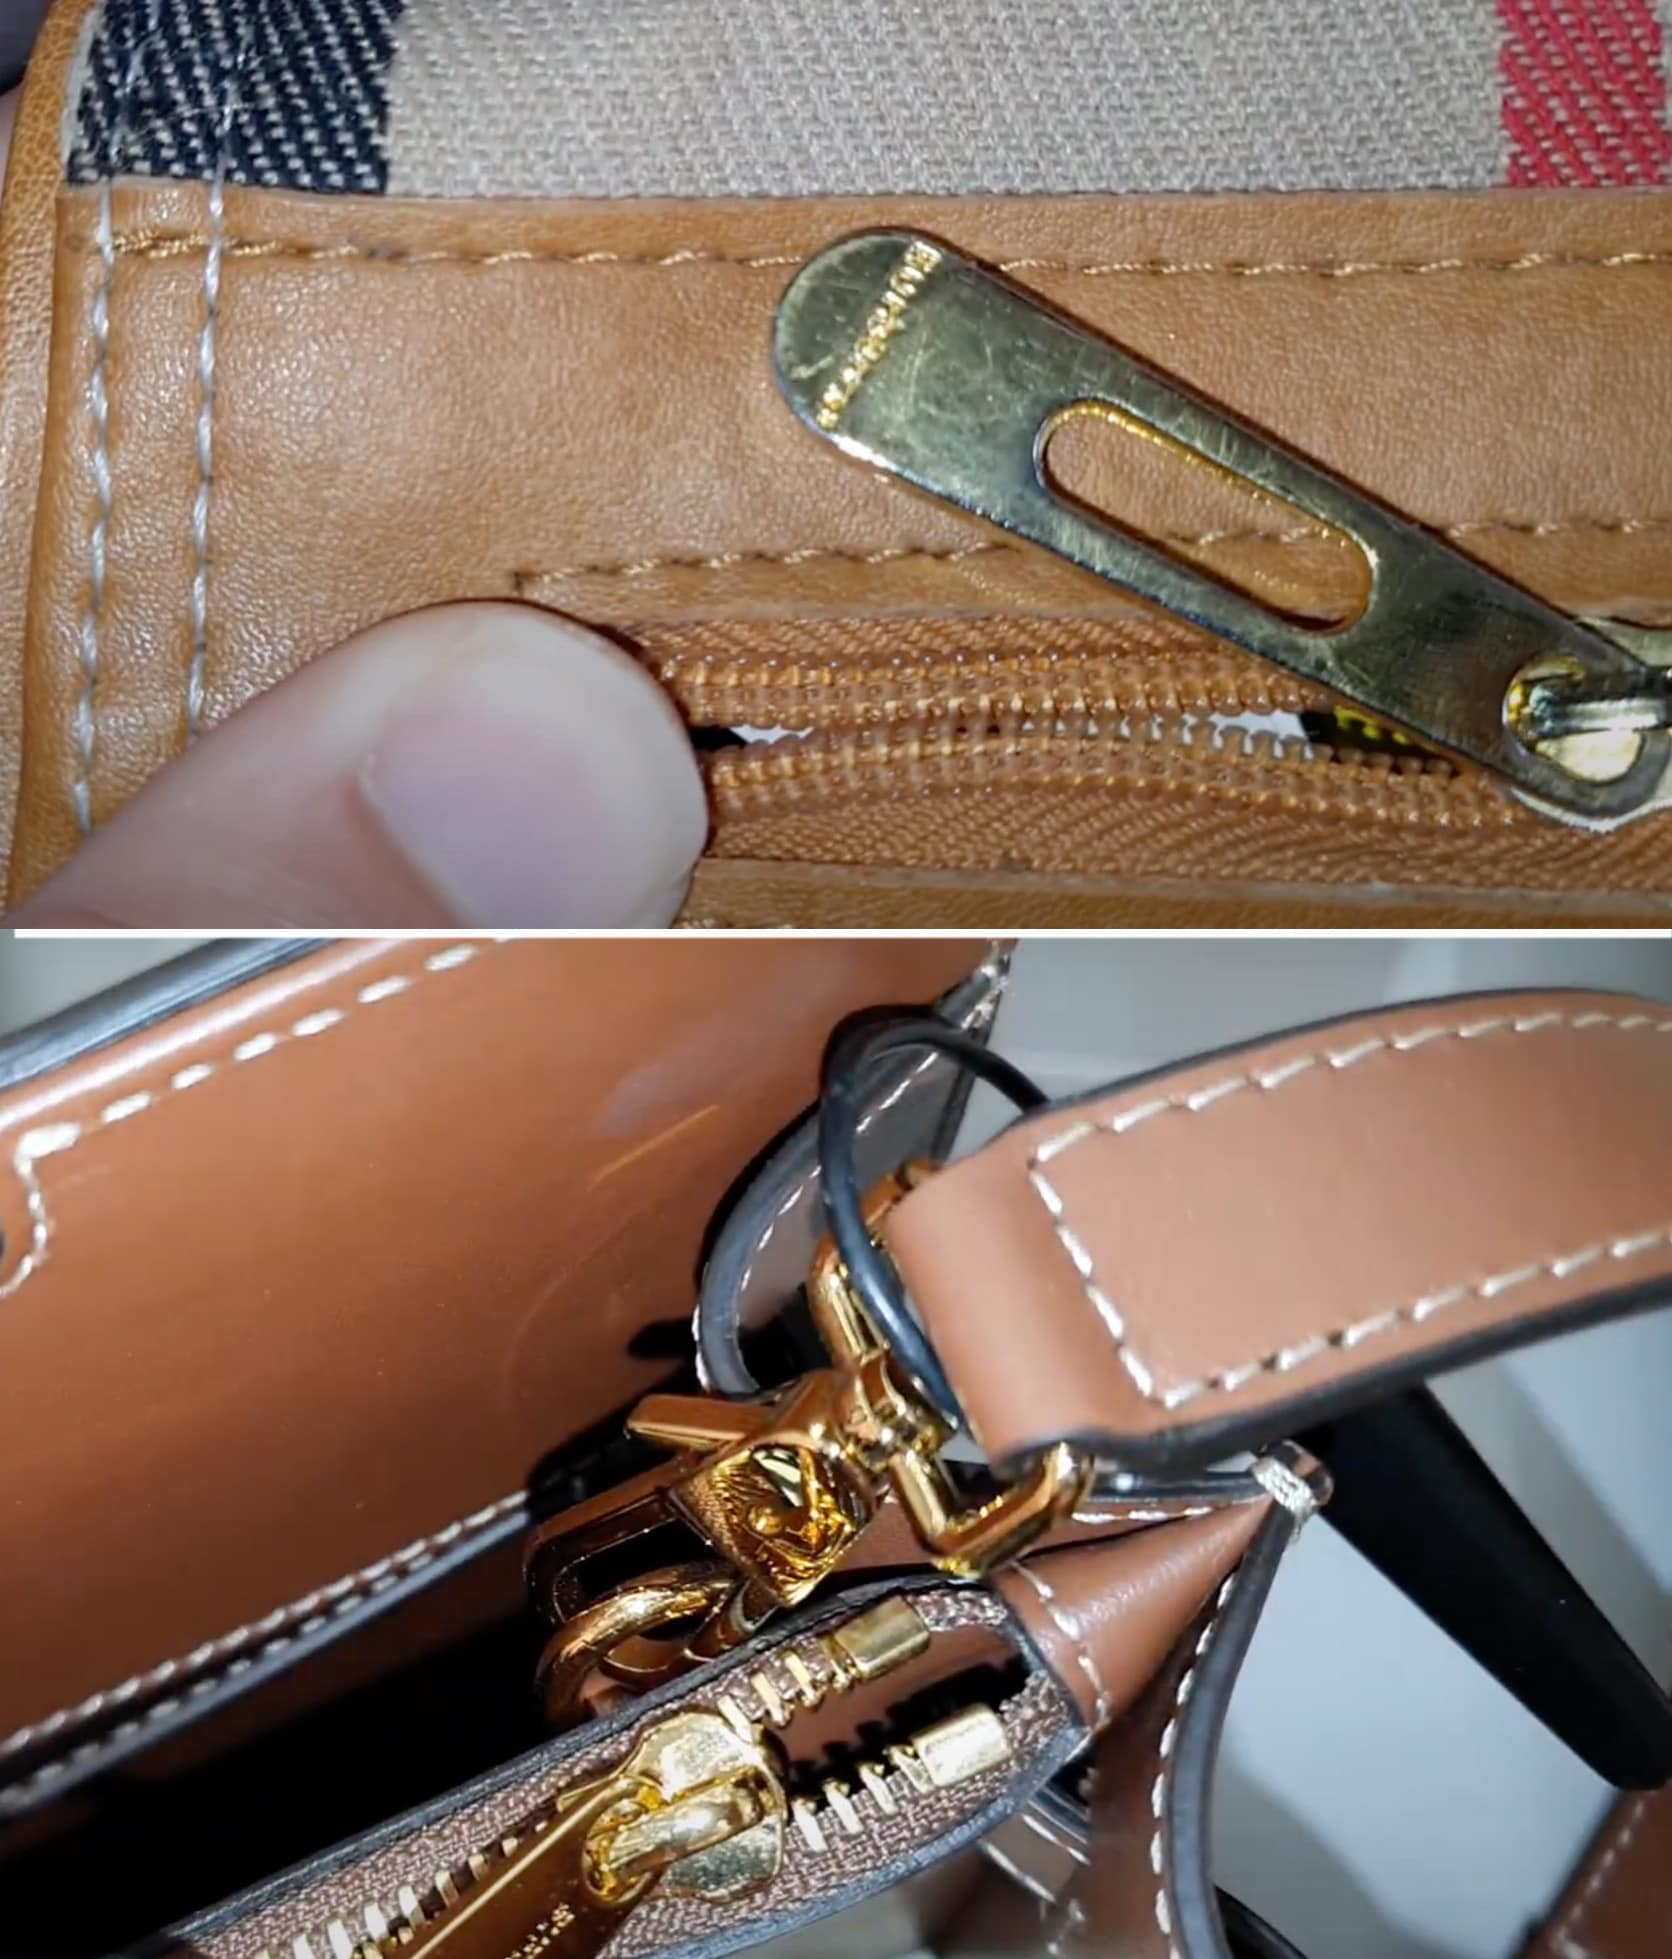 Fake Burberry bags have faded metal and uneven stitchings (top), while real Burberry bags (bottom) have polished metal and even and sturdy stitchings